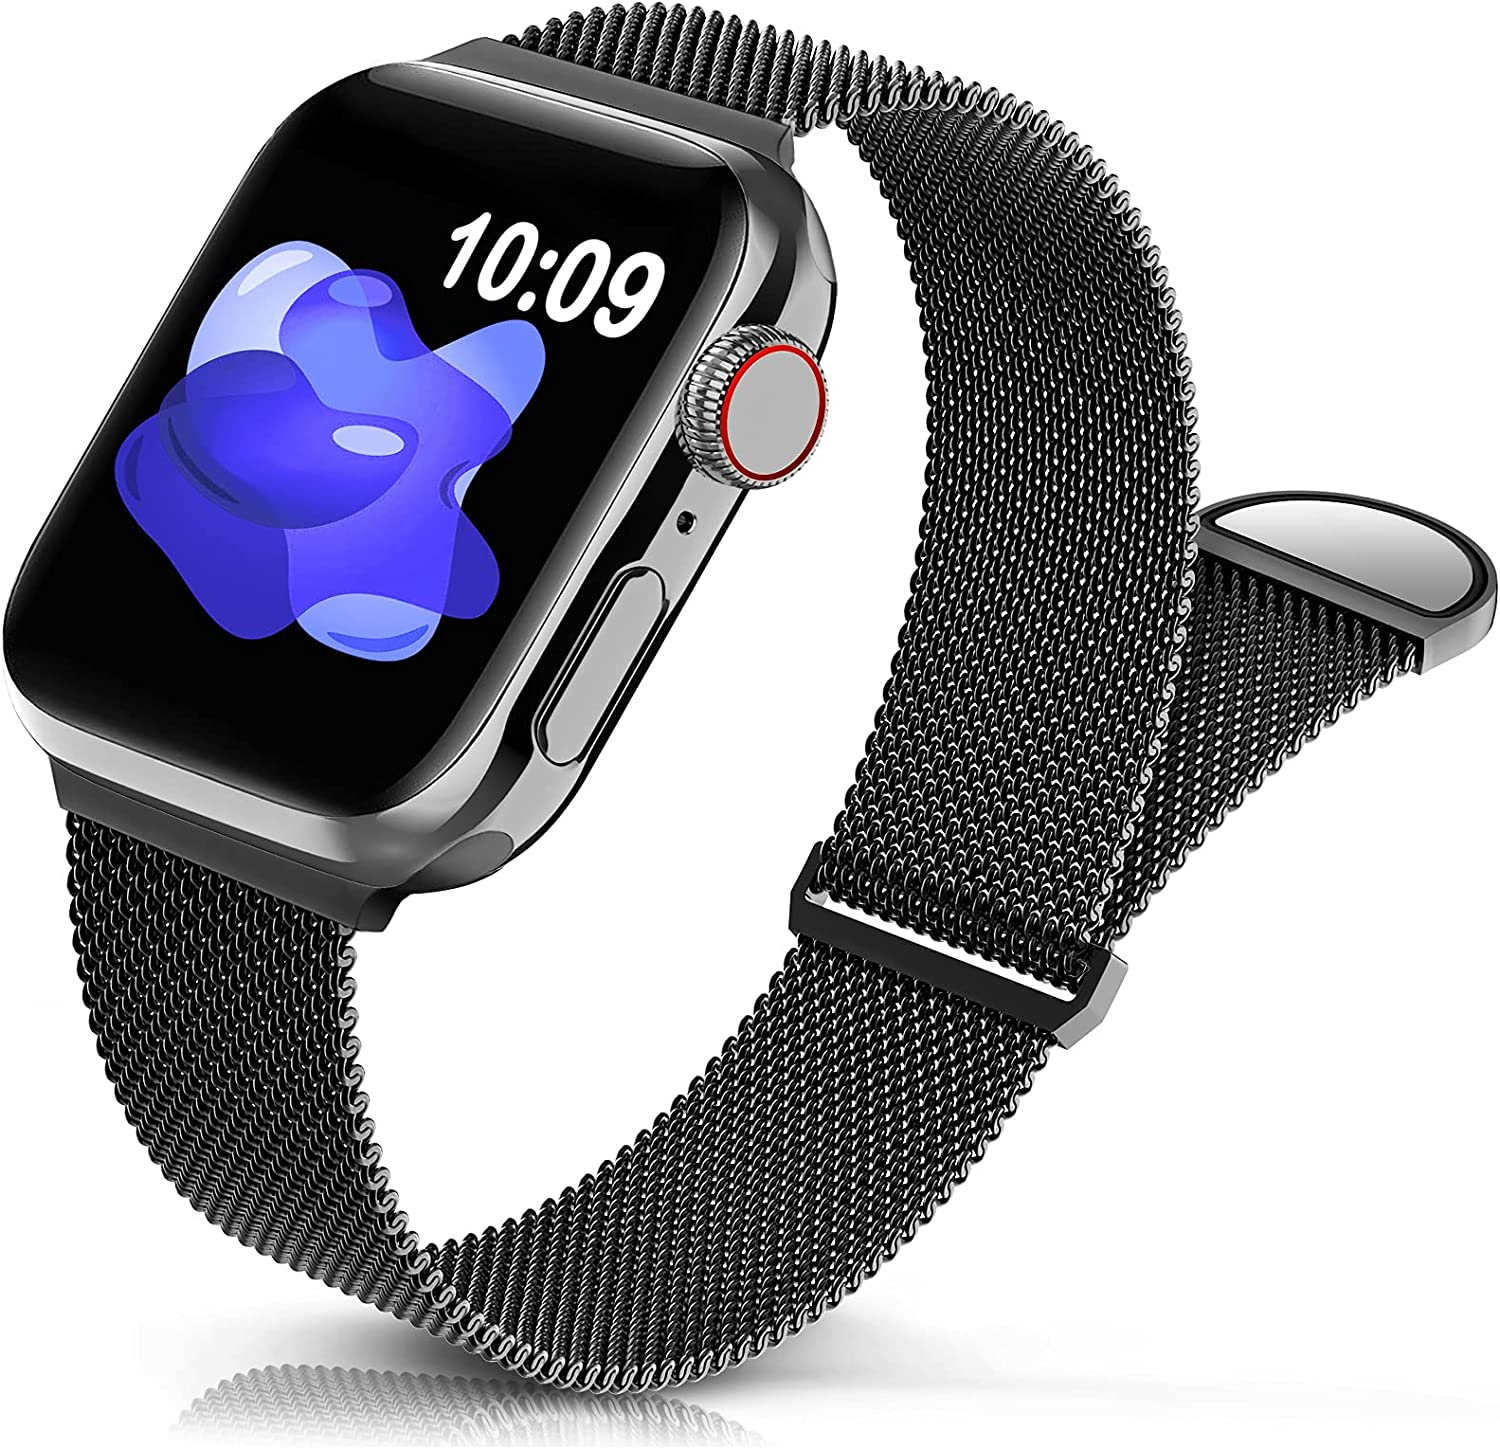 Sunnywoo Metal Stainless Steel Band Compatible with Apple Watch Bands 38mm 40mm 42mm 44mm,Black Loop Adjustable Strap Magnetic Replacement Wristband for iWatch Series 6 5 4 3 2 1 SE for Women Men